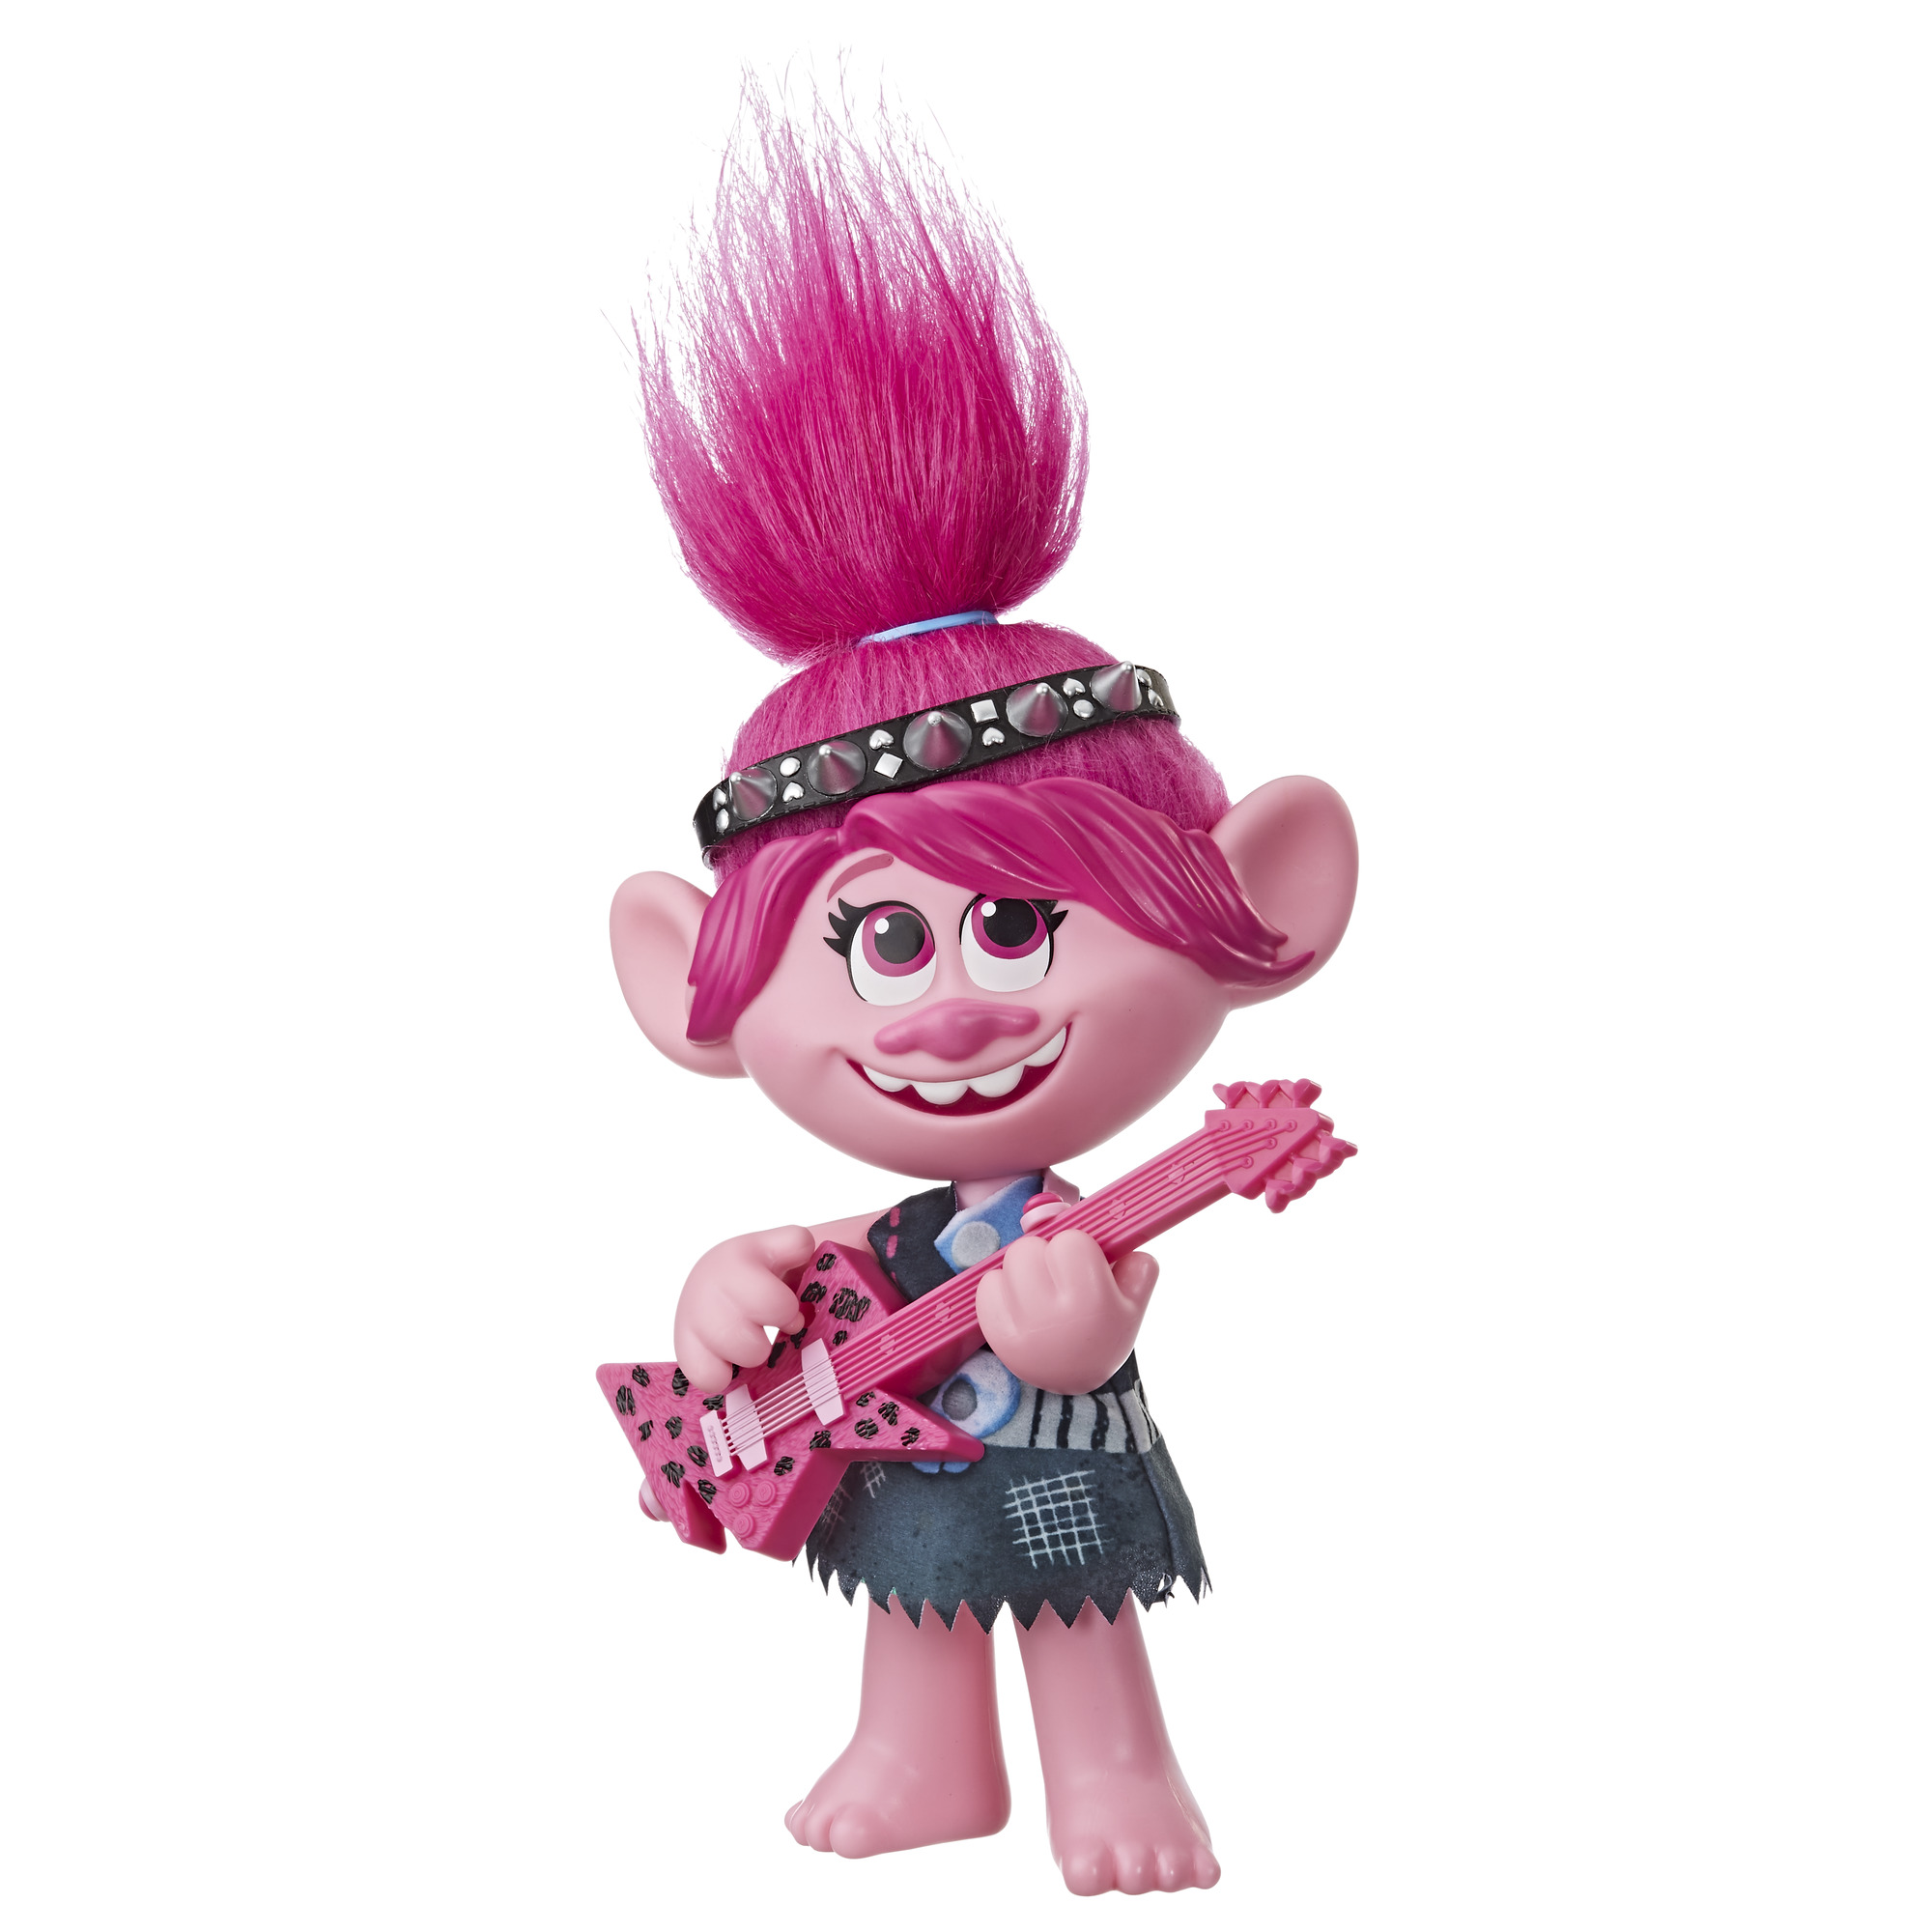 cooper from trolls-trolls action figures-trolls plastic figures set TROLLS Kids box Gummy candies and 3D toys inside 12 different figures of Trolls in collection one figure in blind surprise bag